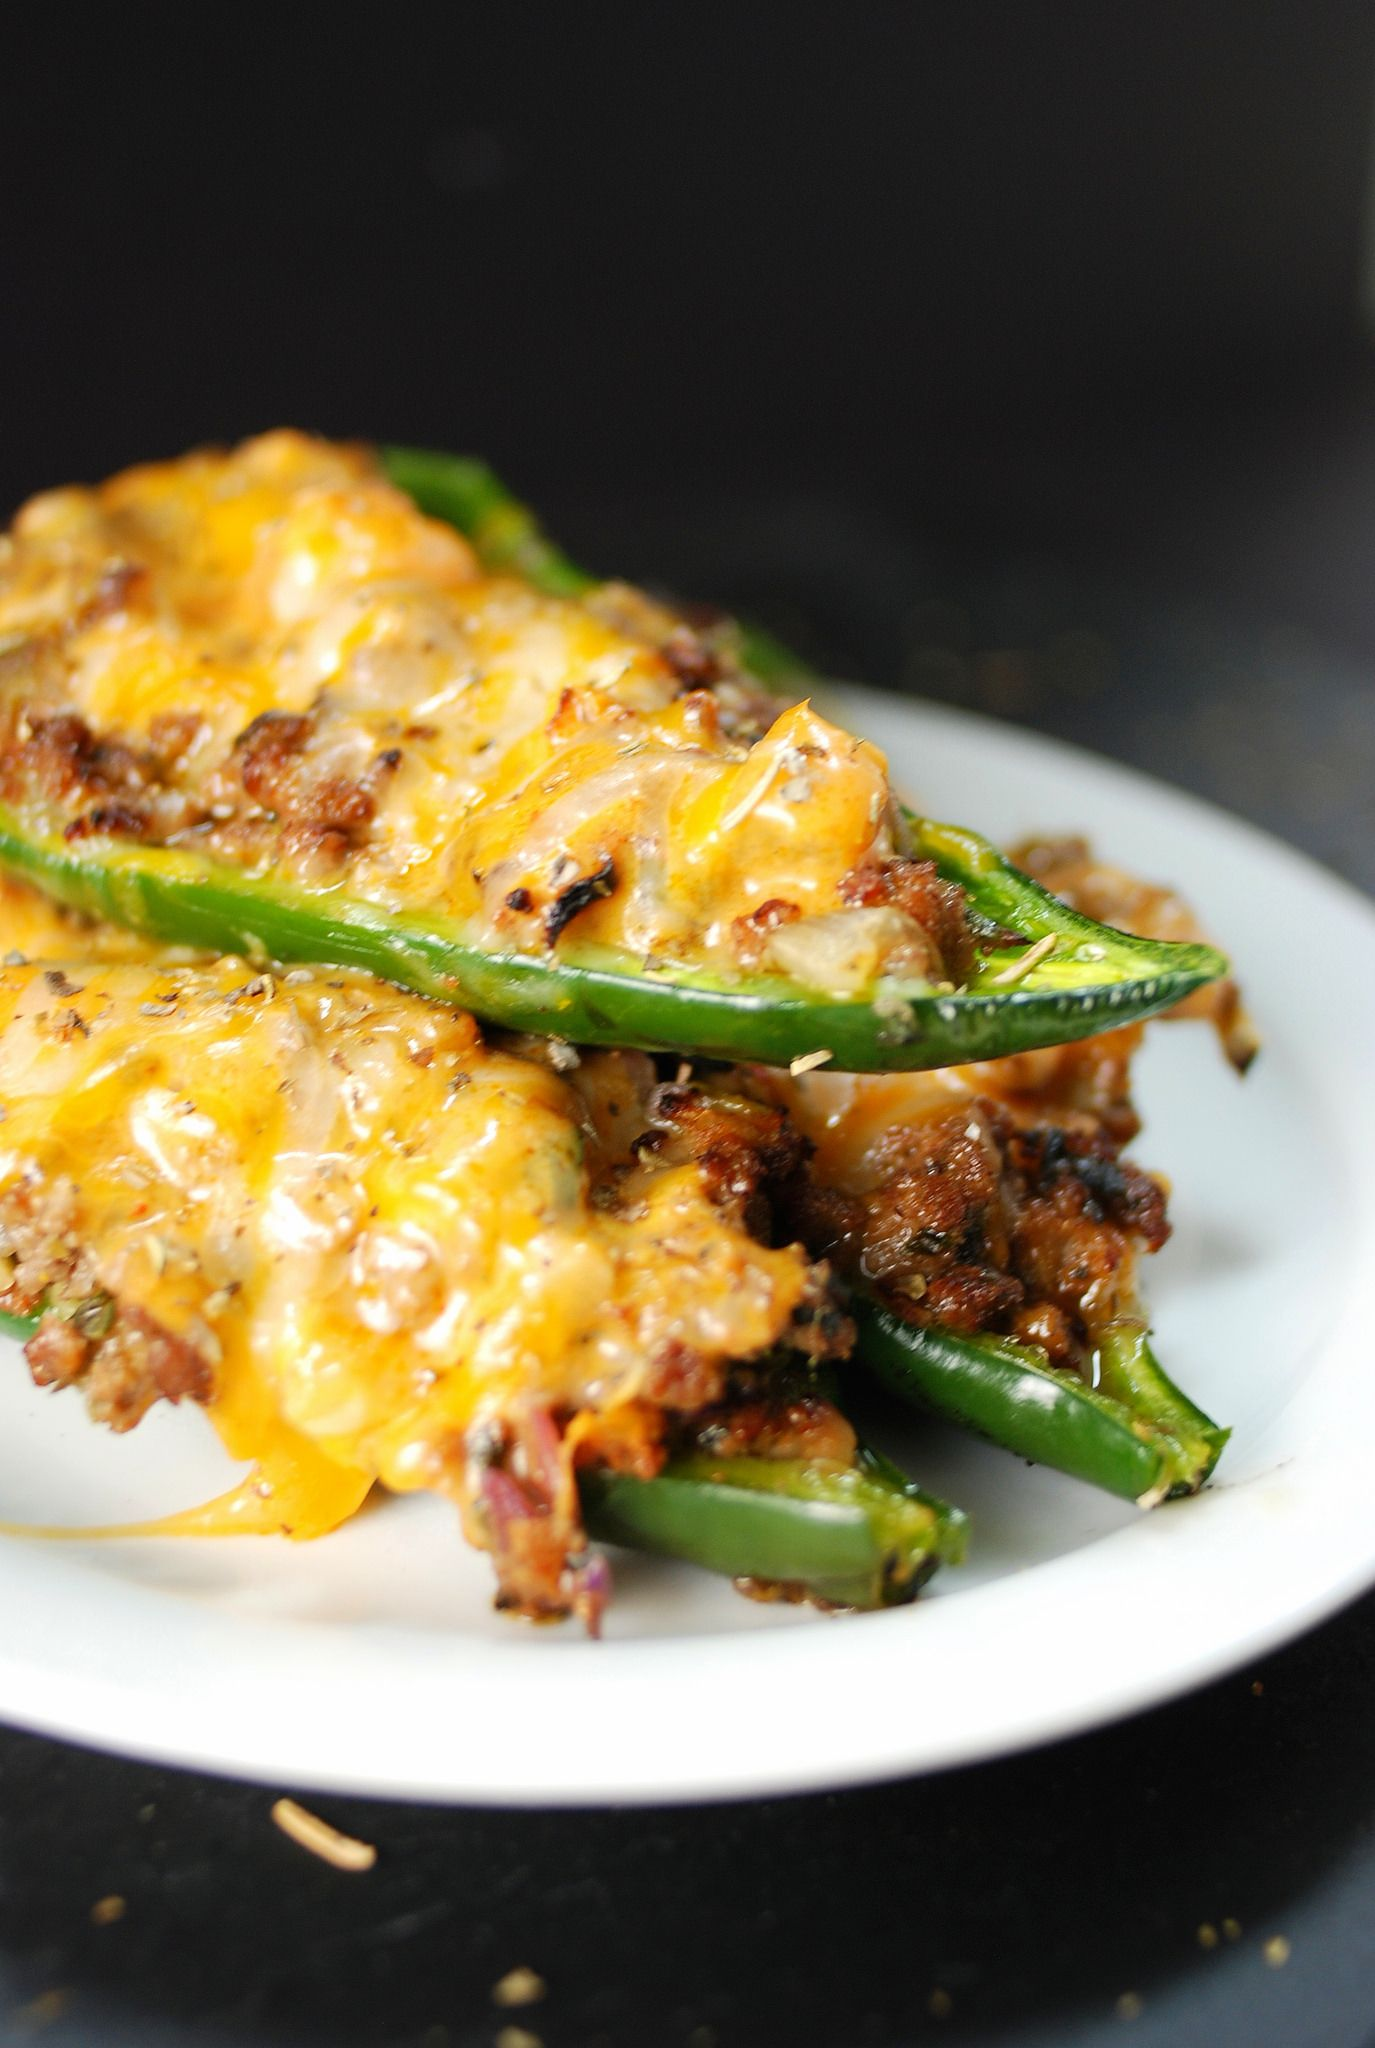 Queso Ground Beef Poblano Peppers Recipe Stuffed Peppers Peppers Recipes Poblano Peppers Recipes